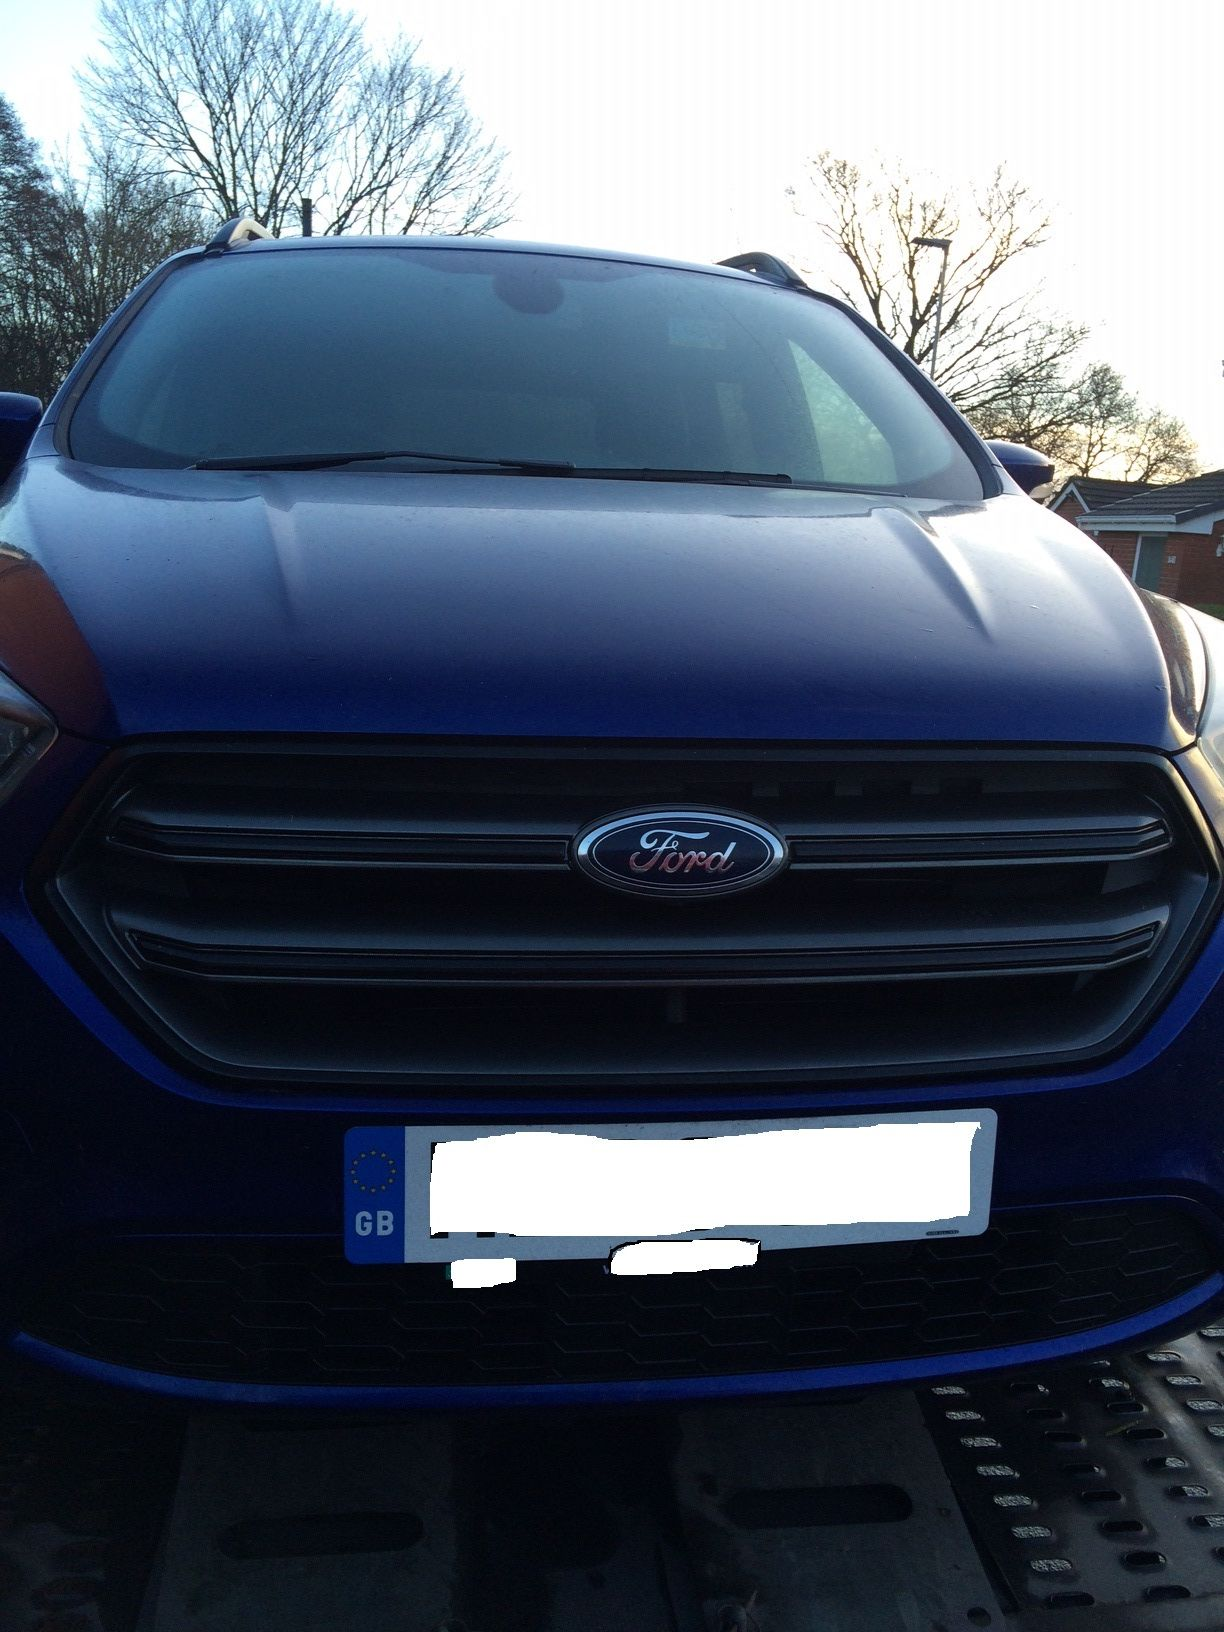 The Ford Kuga Leasing Deal One Of The Many Cars And Vans